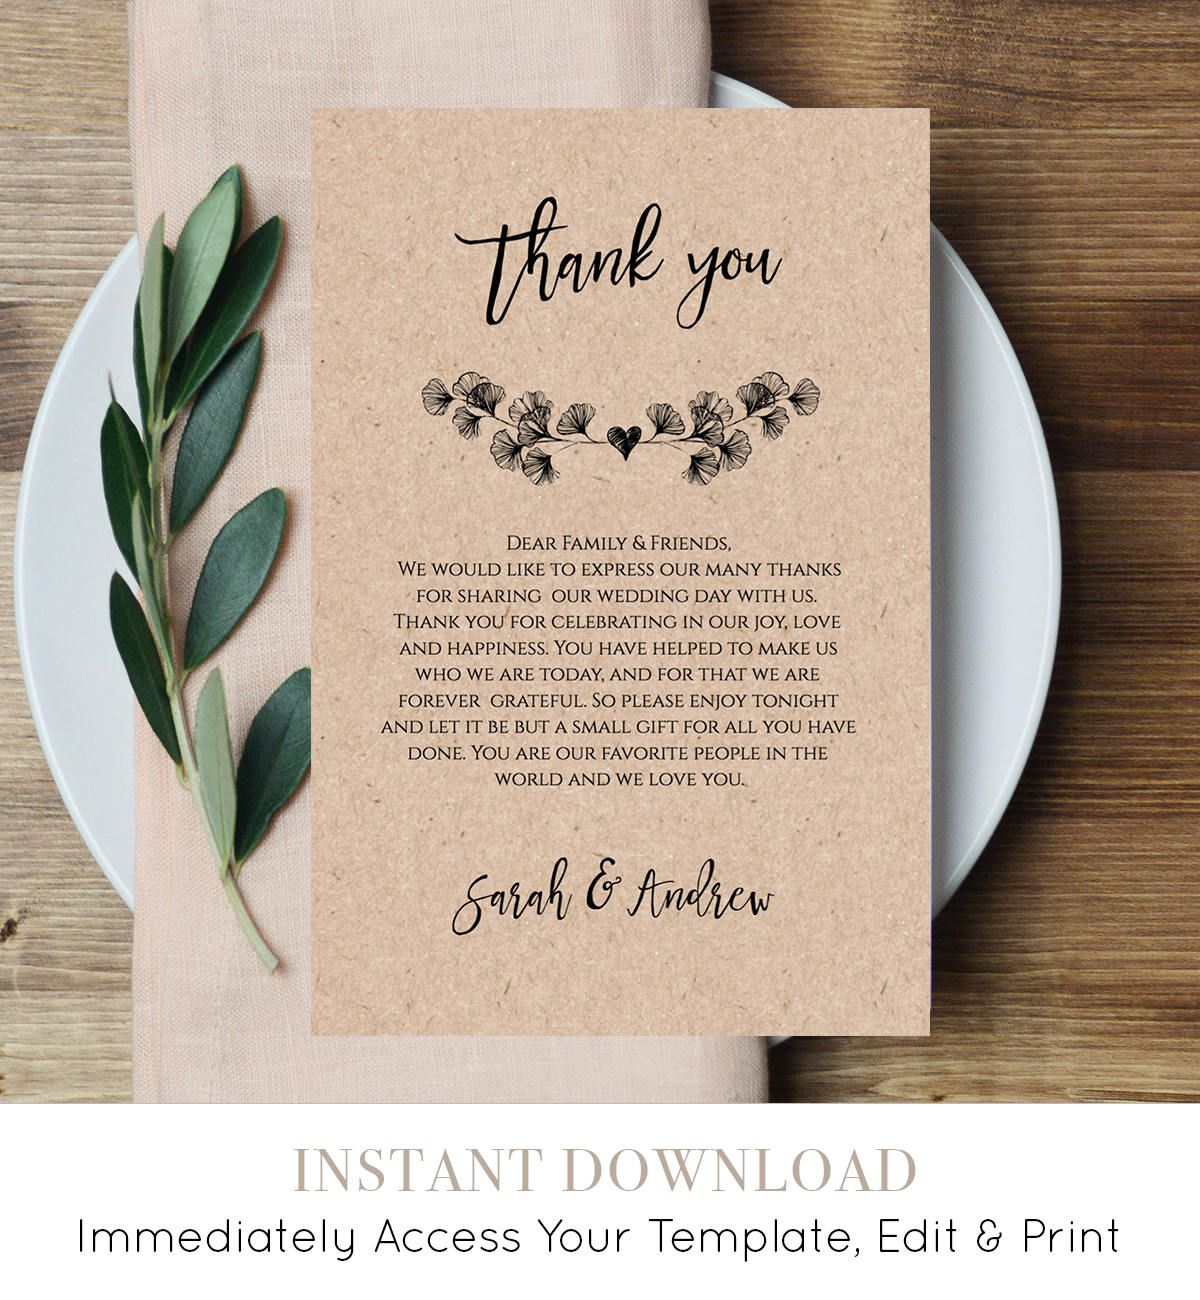 008 Impressive Thank You Note For Wedding Guest Template Sample  CardFull